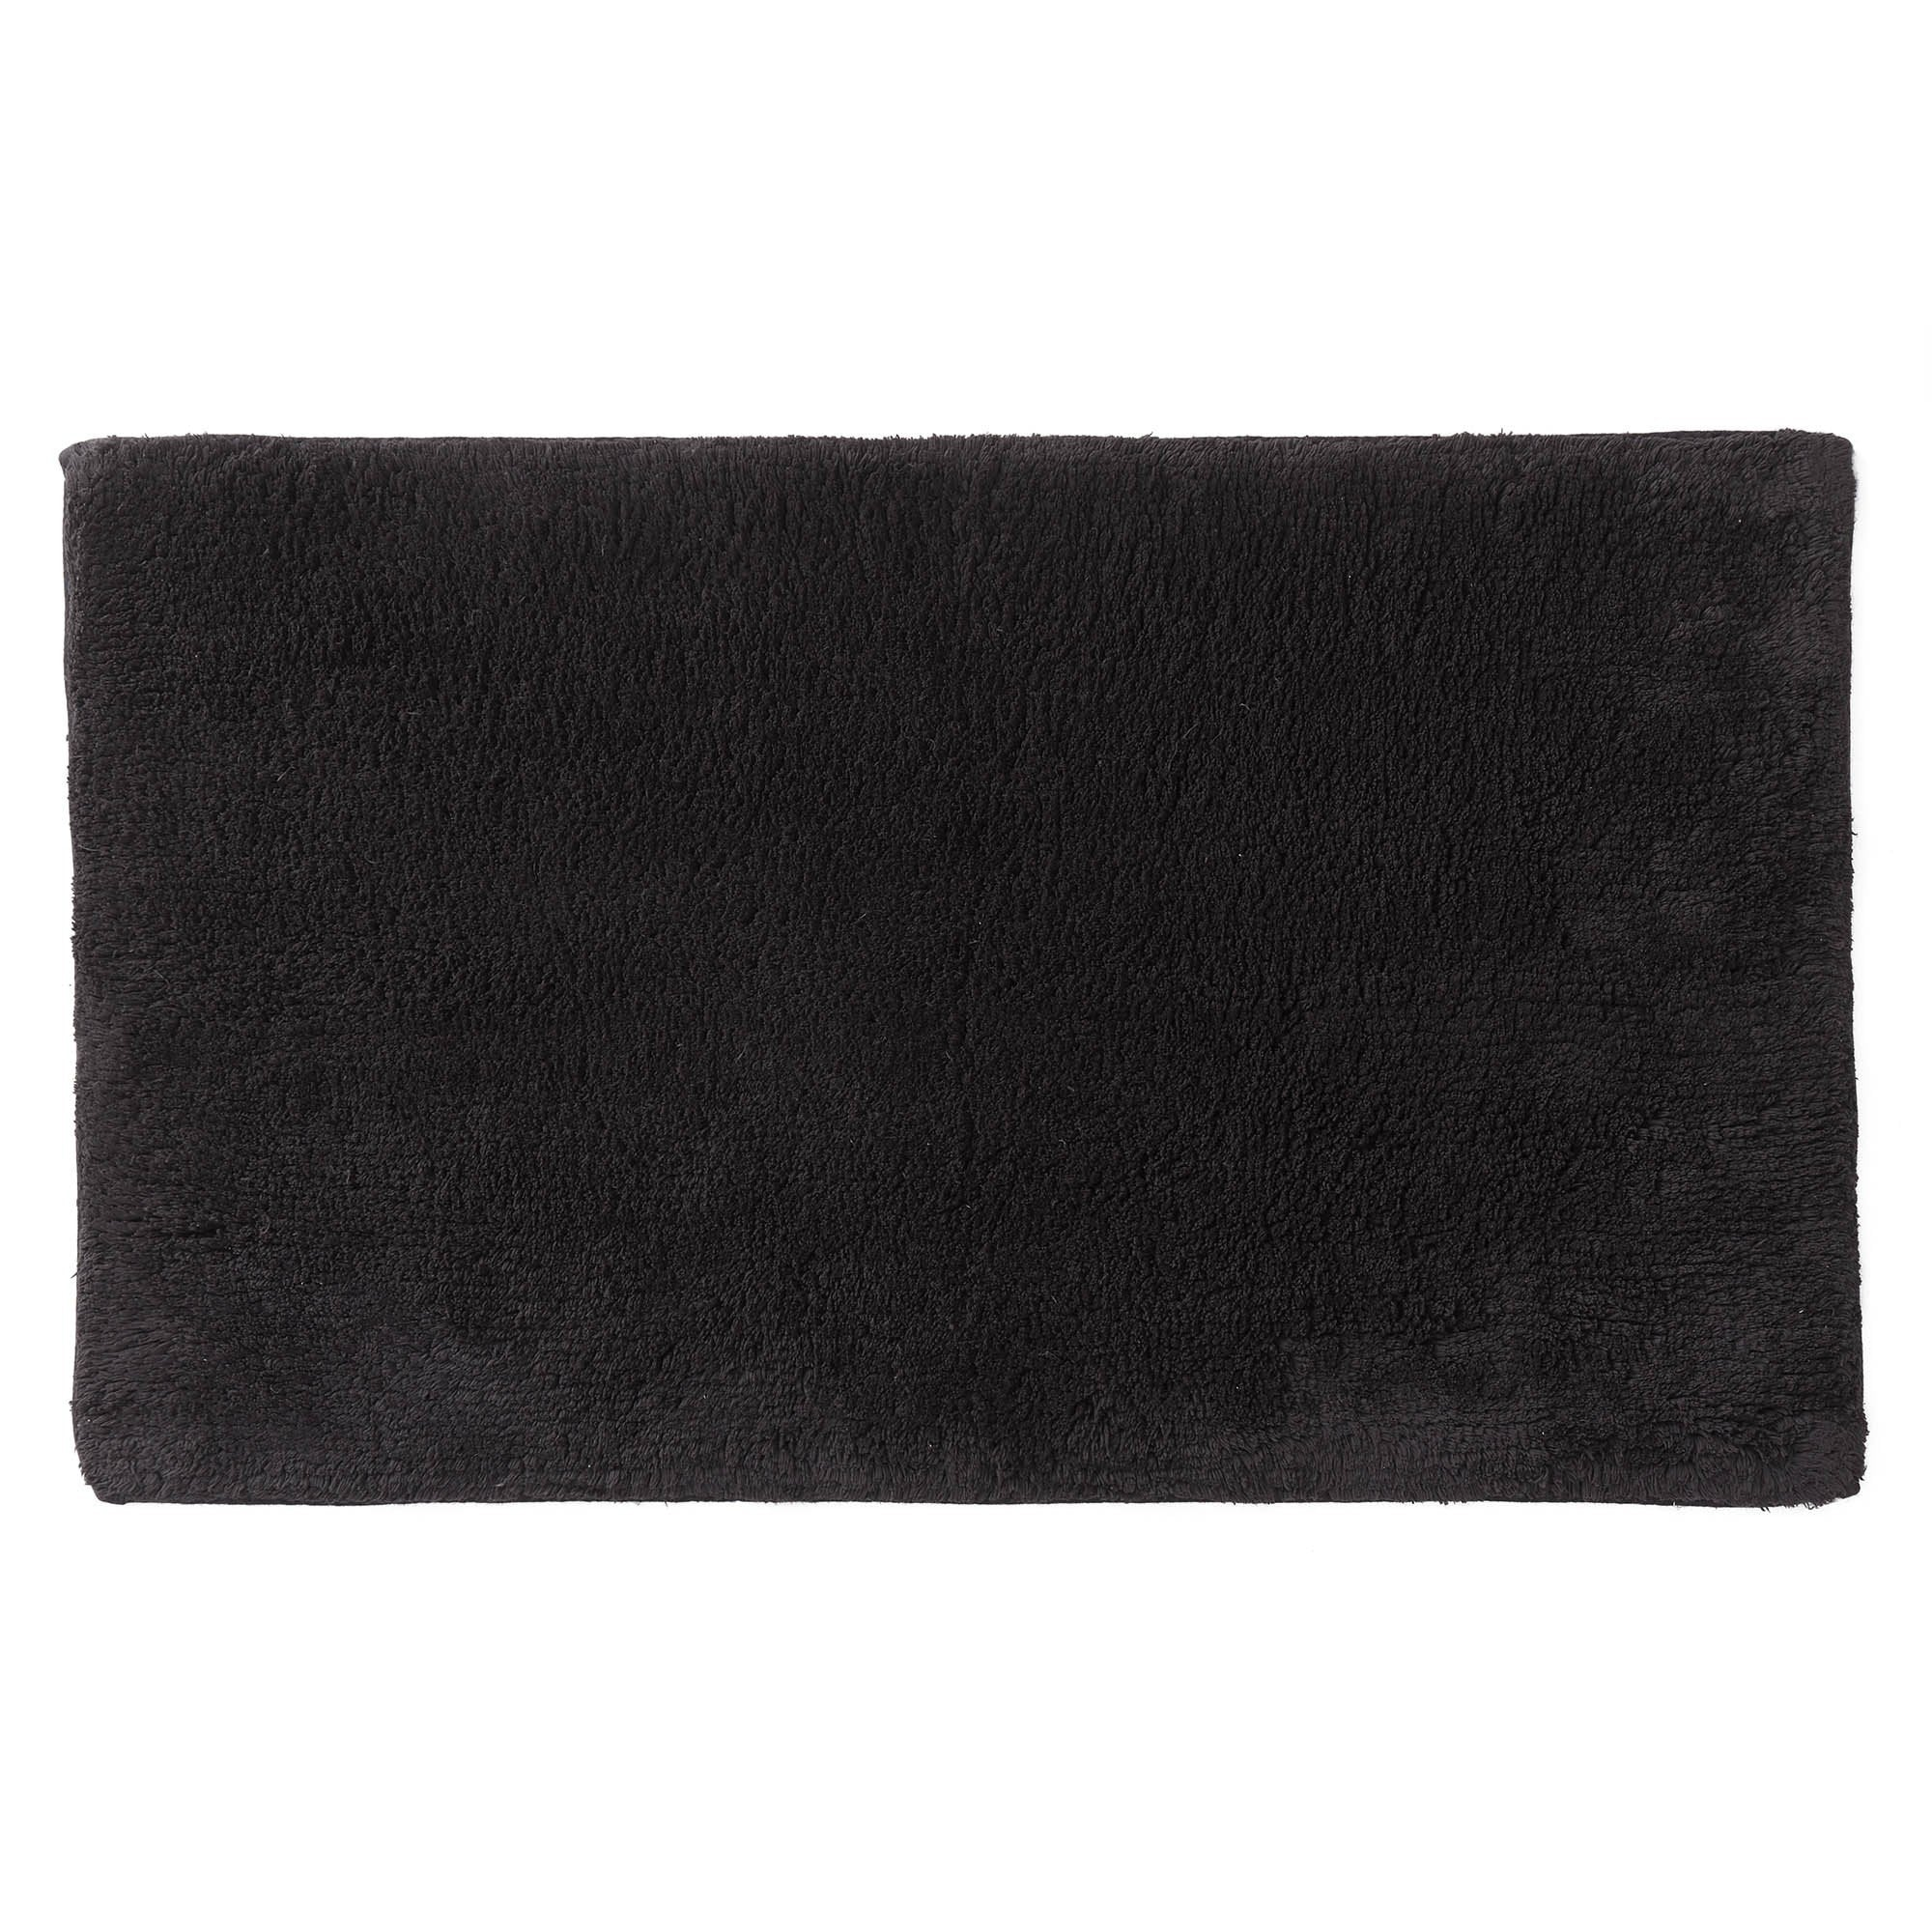 Banas bath mat, charcoal, 100% cotton